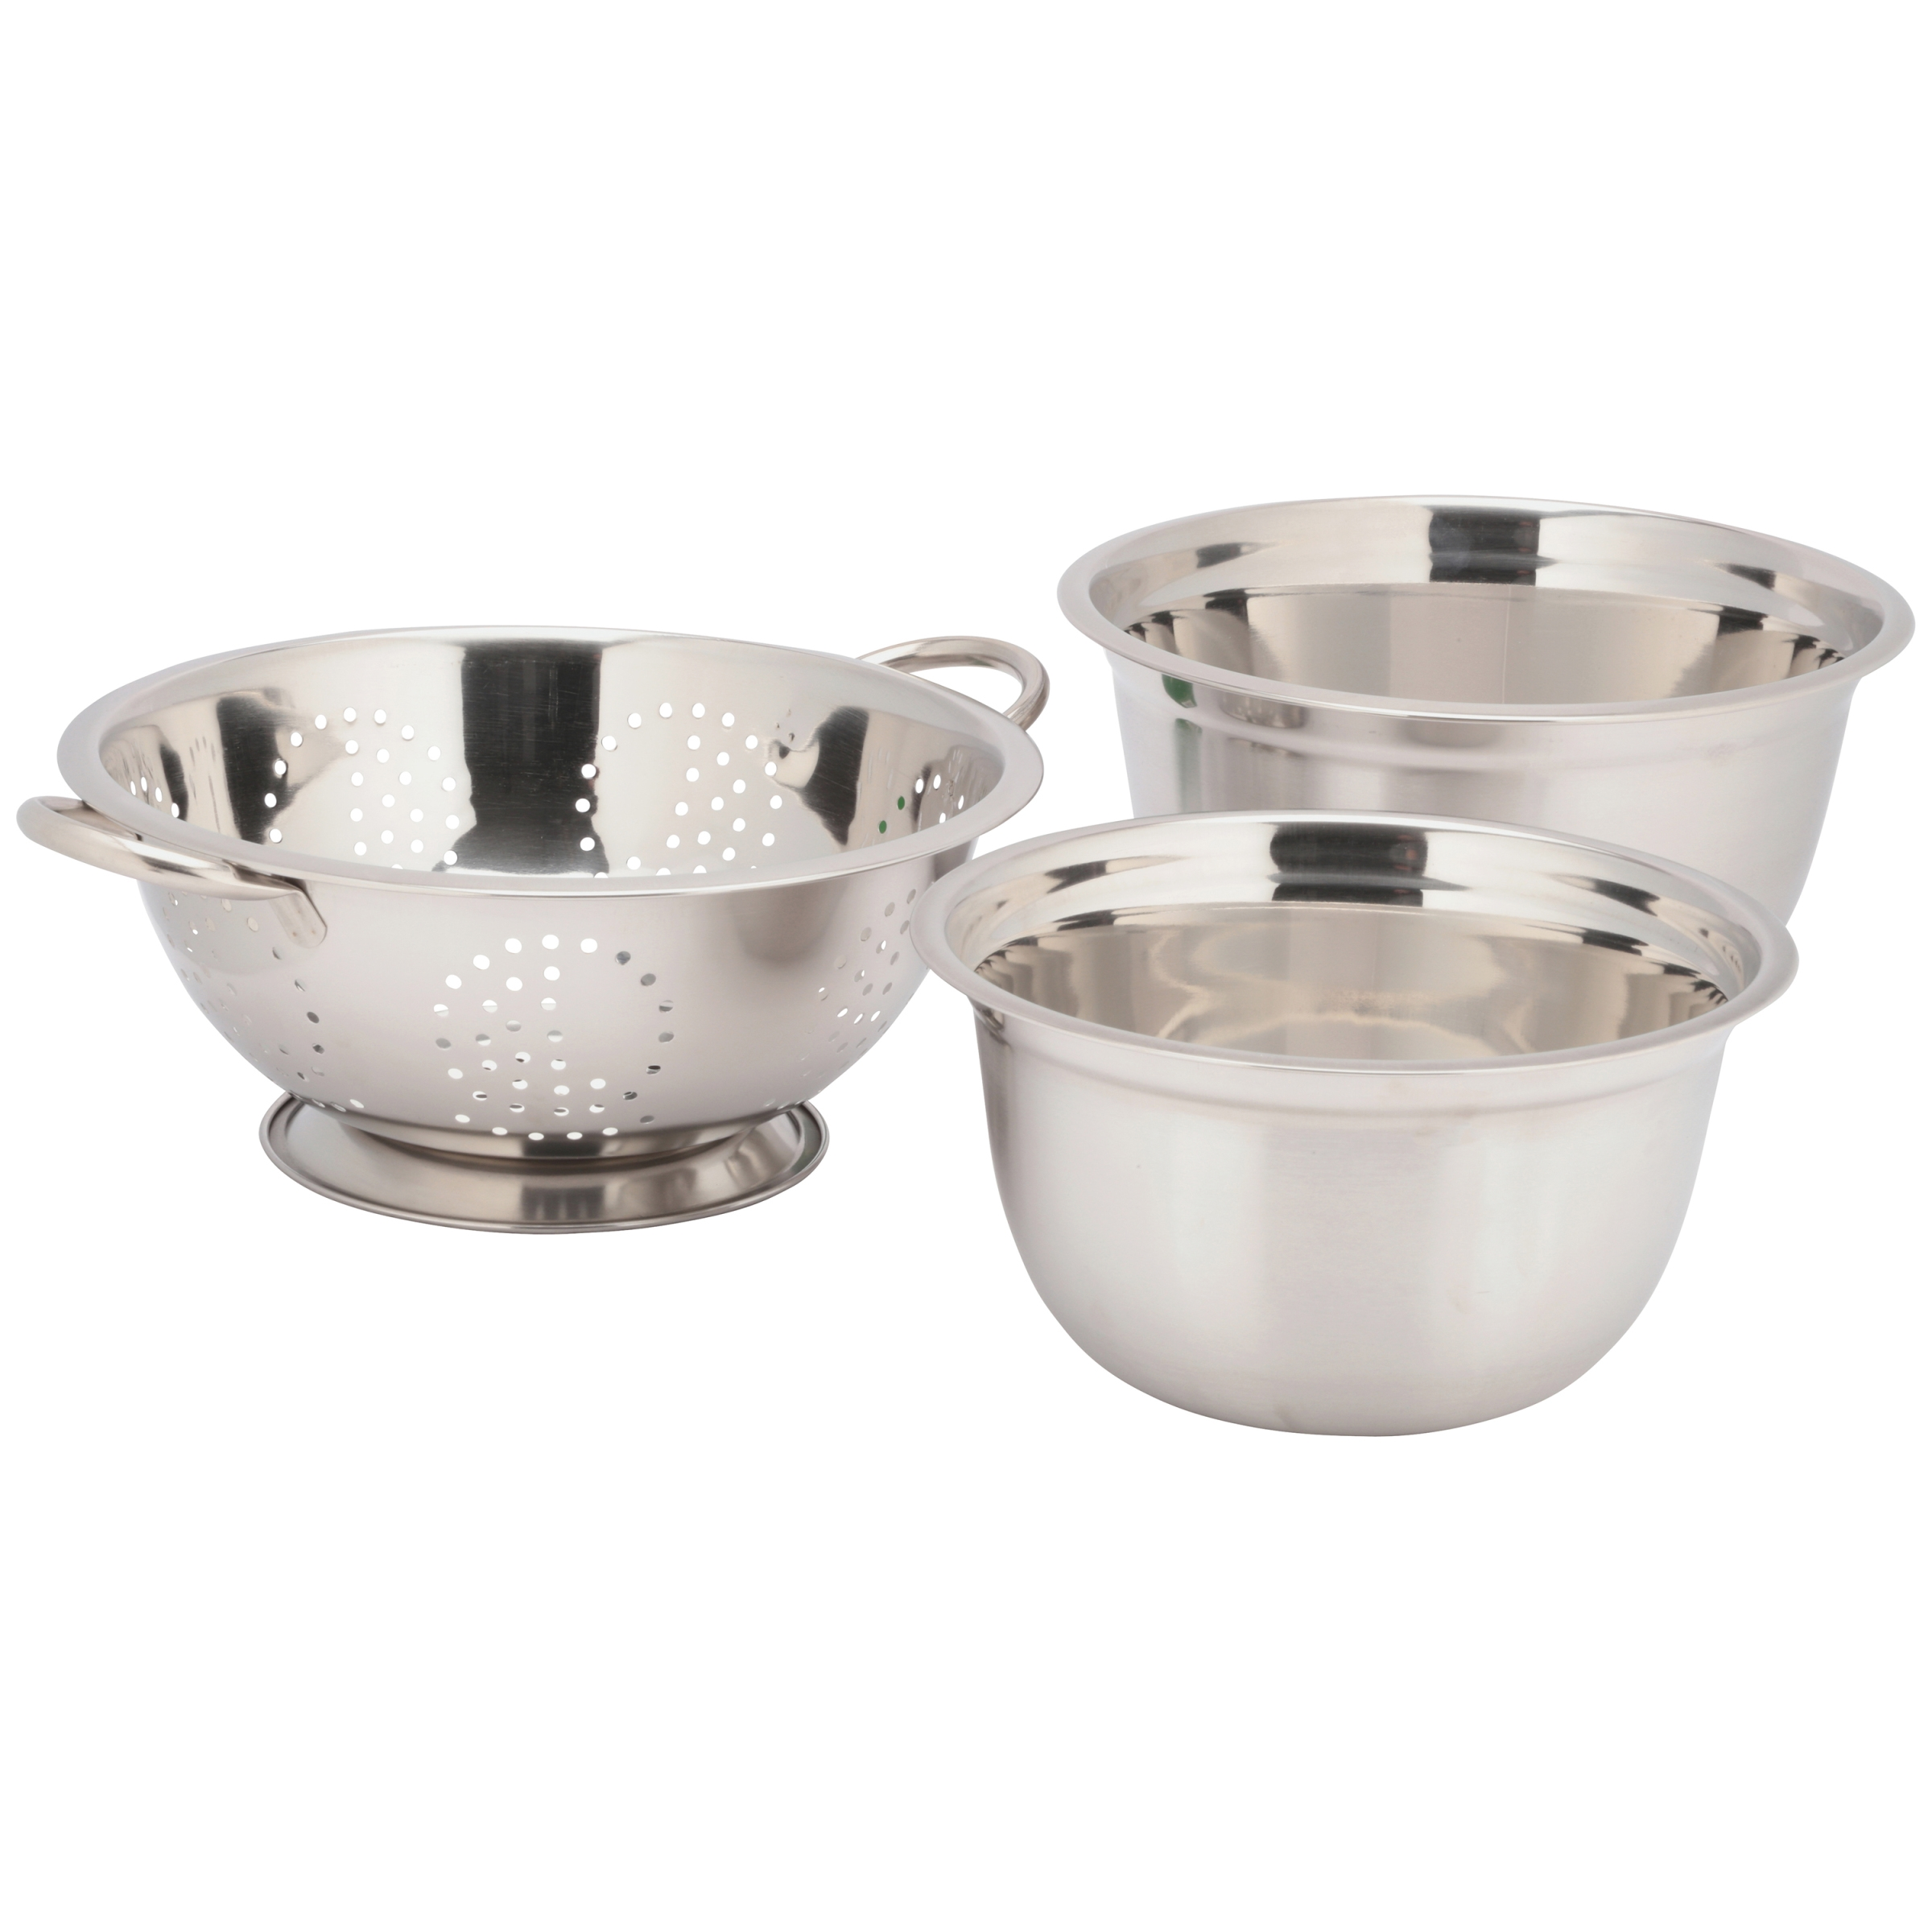 Prep-N-Cook Stainless Steel Mixing Bowls & Colander 3 pc Pack